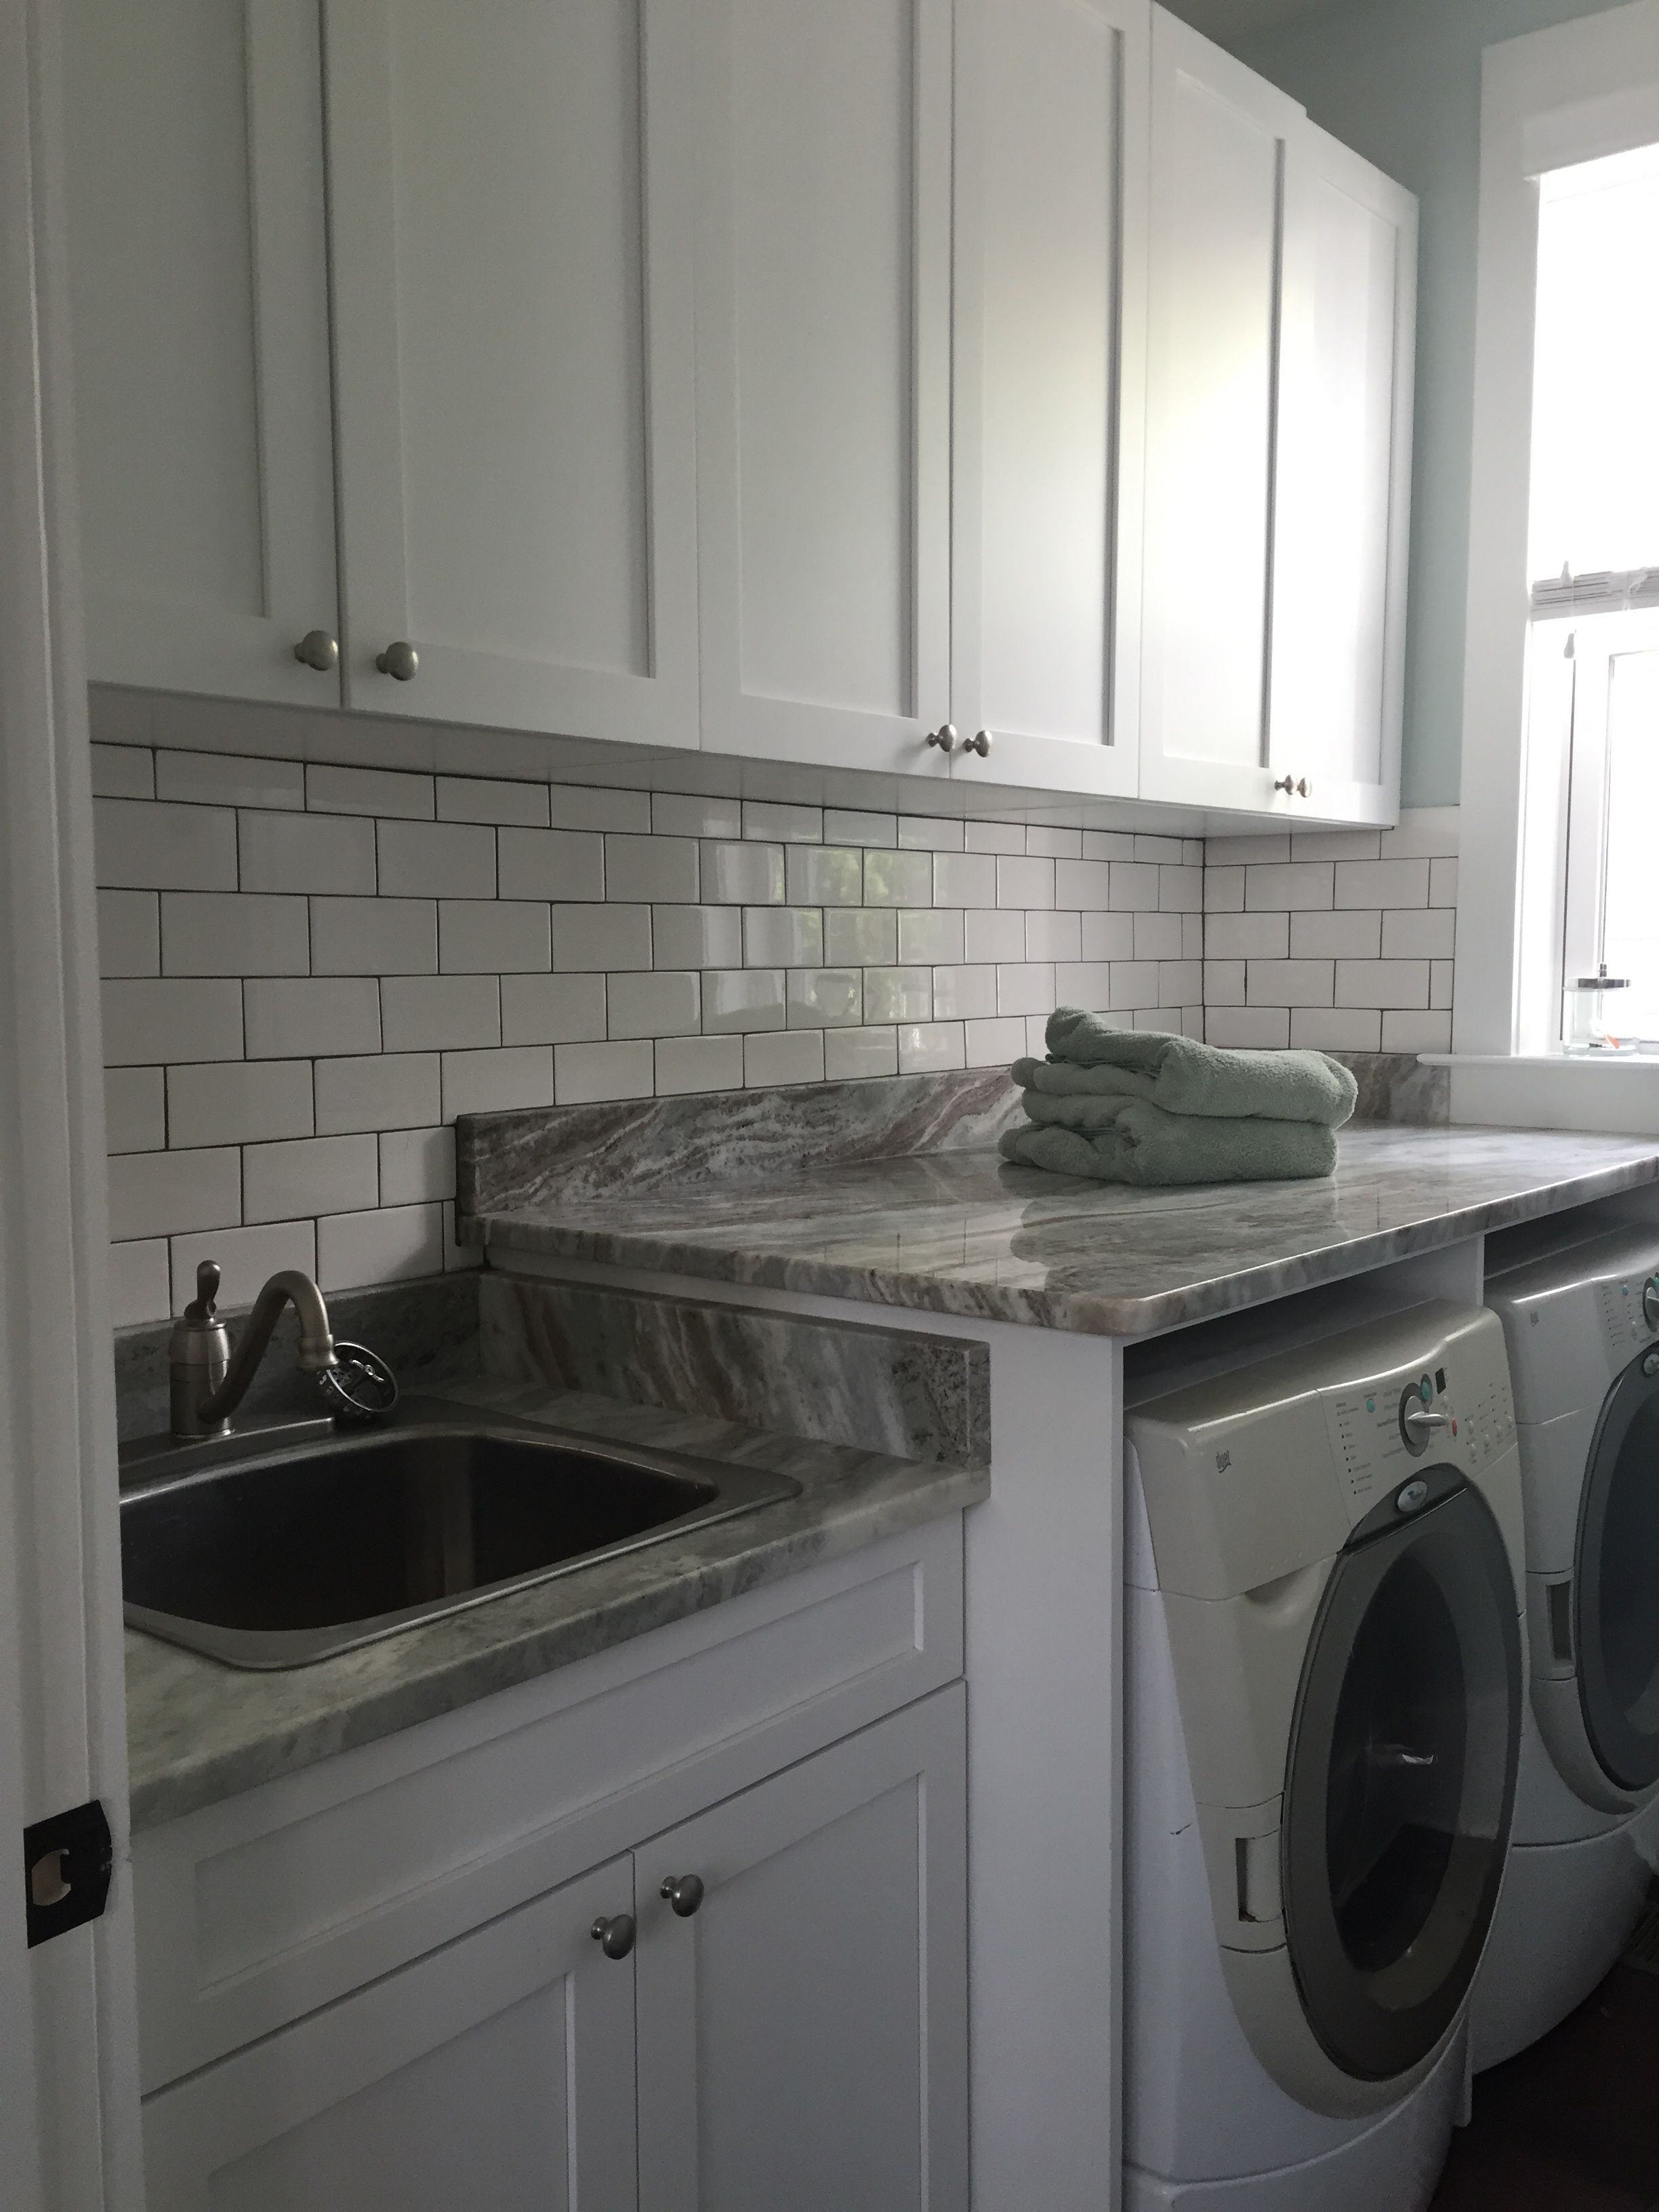 Laundry Room, Granite Counter Tops Are The Same As The Kitchen, White  Subway Tile. White Subway Tile BacksplashUtility SinkKitchen ...